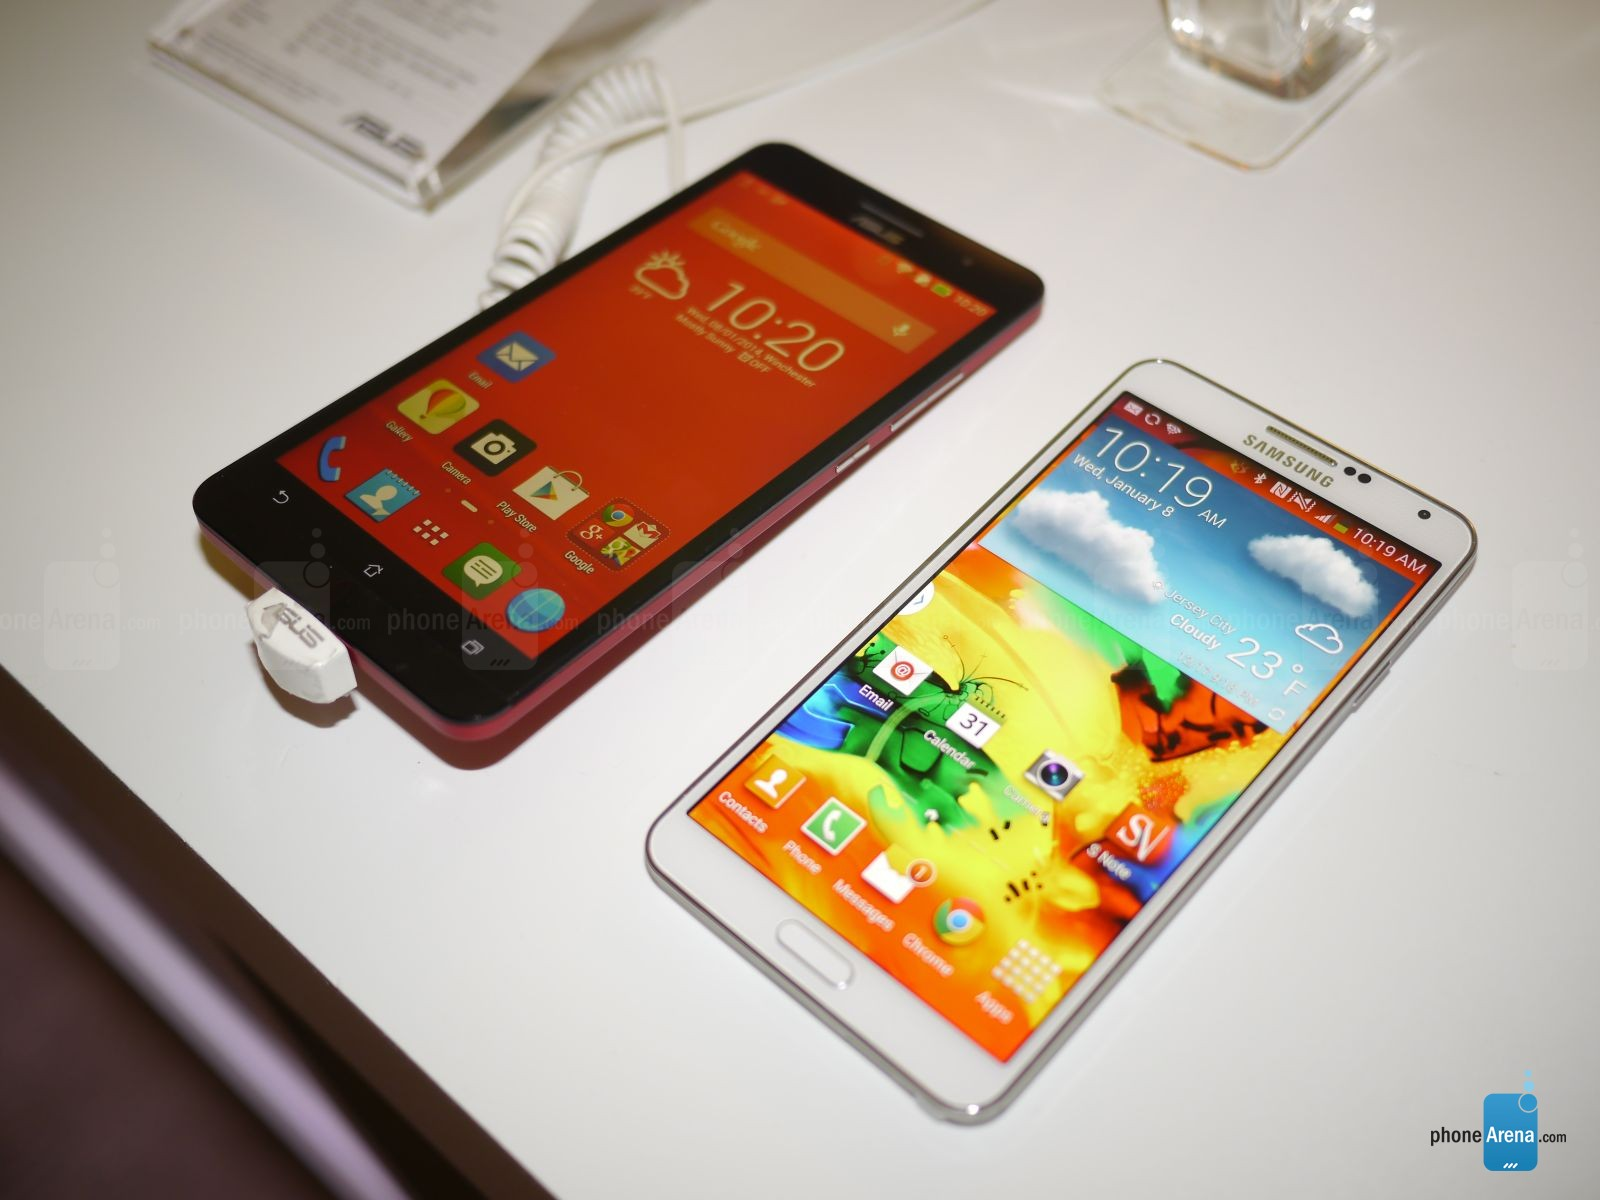 Asus ZenFone 6 vs Samsung Galaxy Note 3  first look   PhoneArena